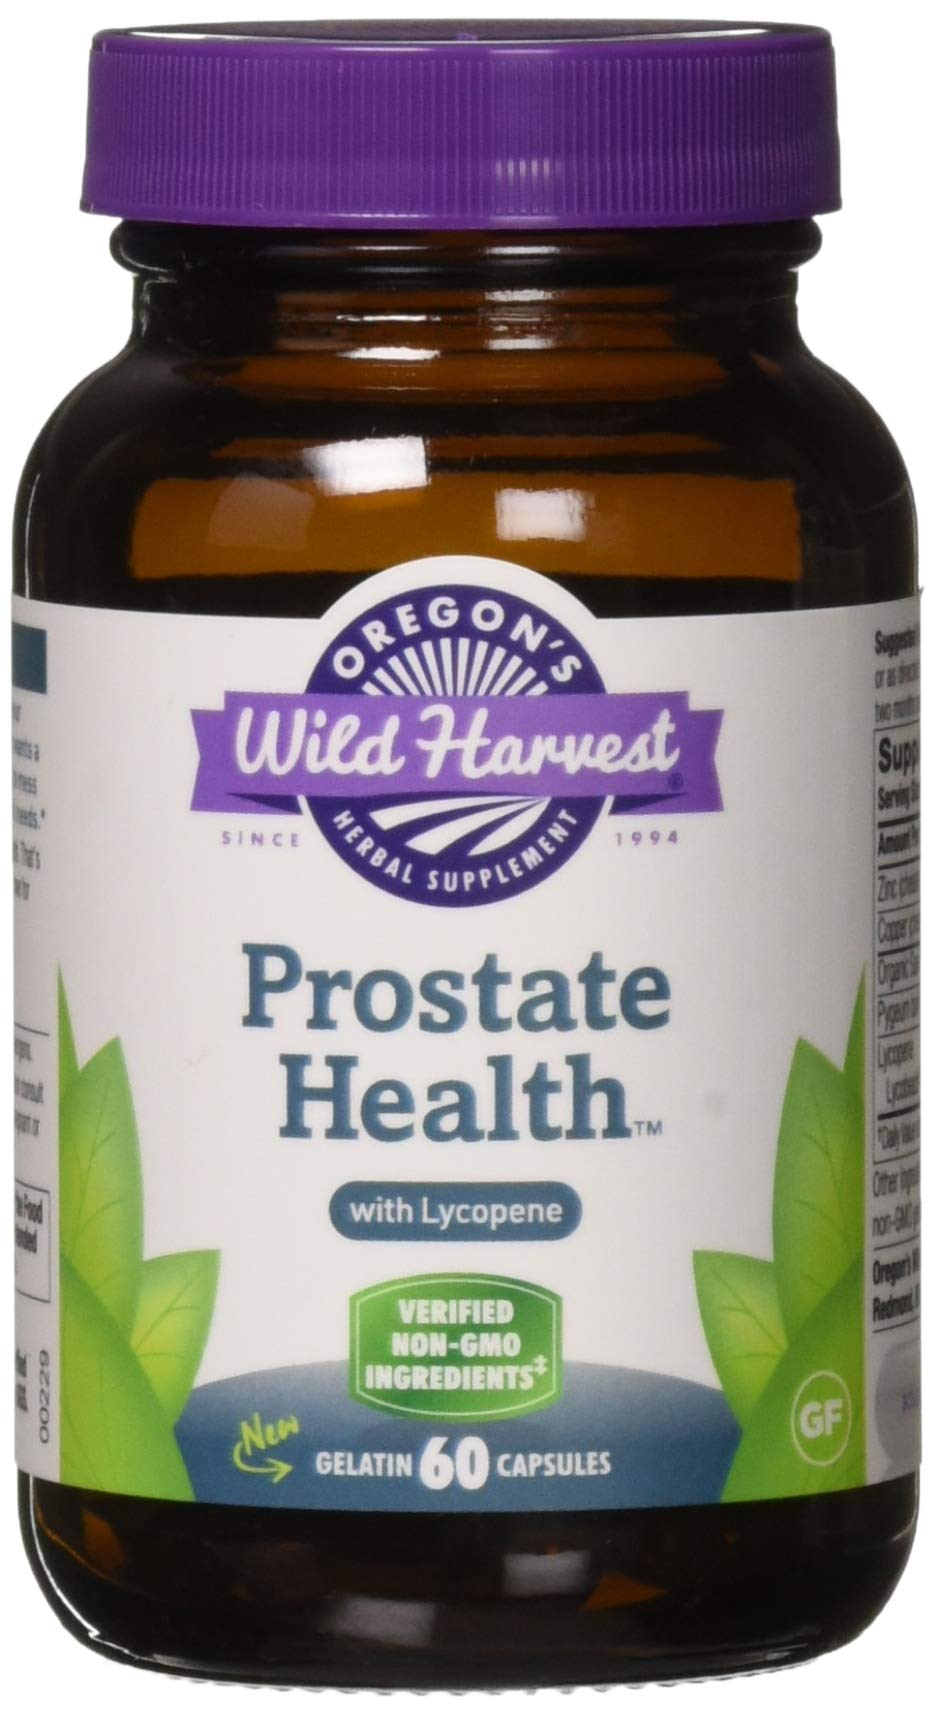 Oregon's Wild Harvest Prostate Health with Lycopene Capsules, 60 Count by Oregon's Wild Harvest